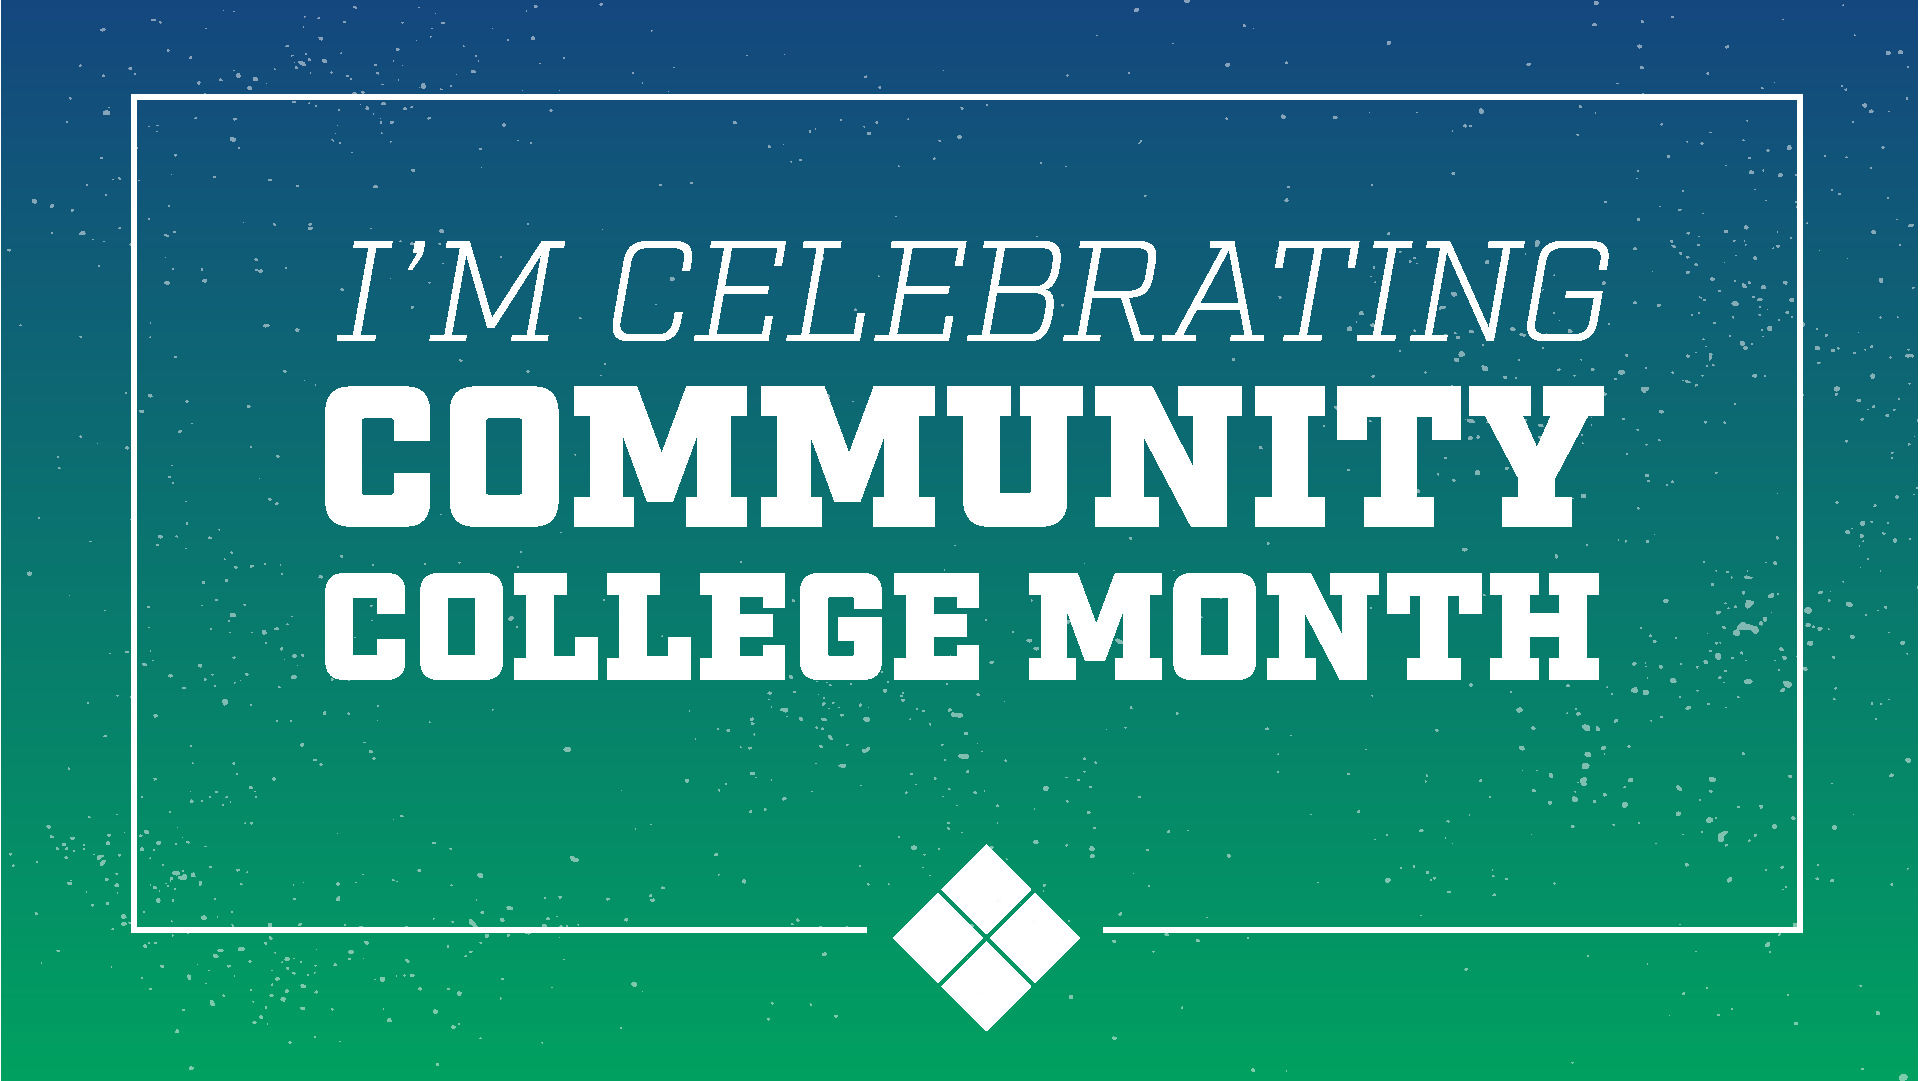 Community College Month Facebook Cover Photo